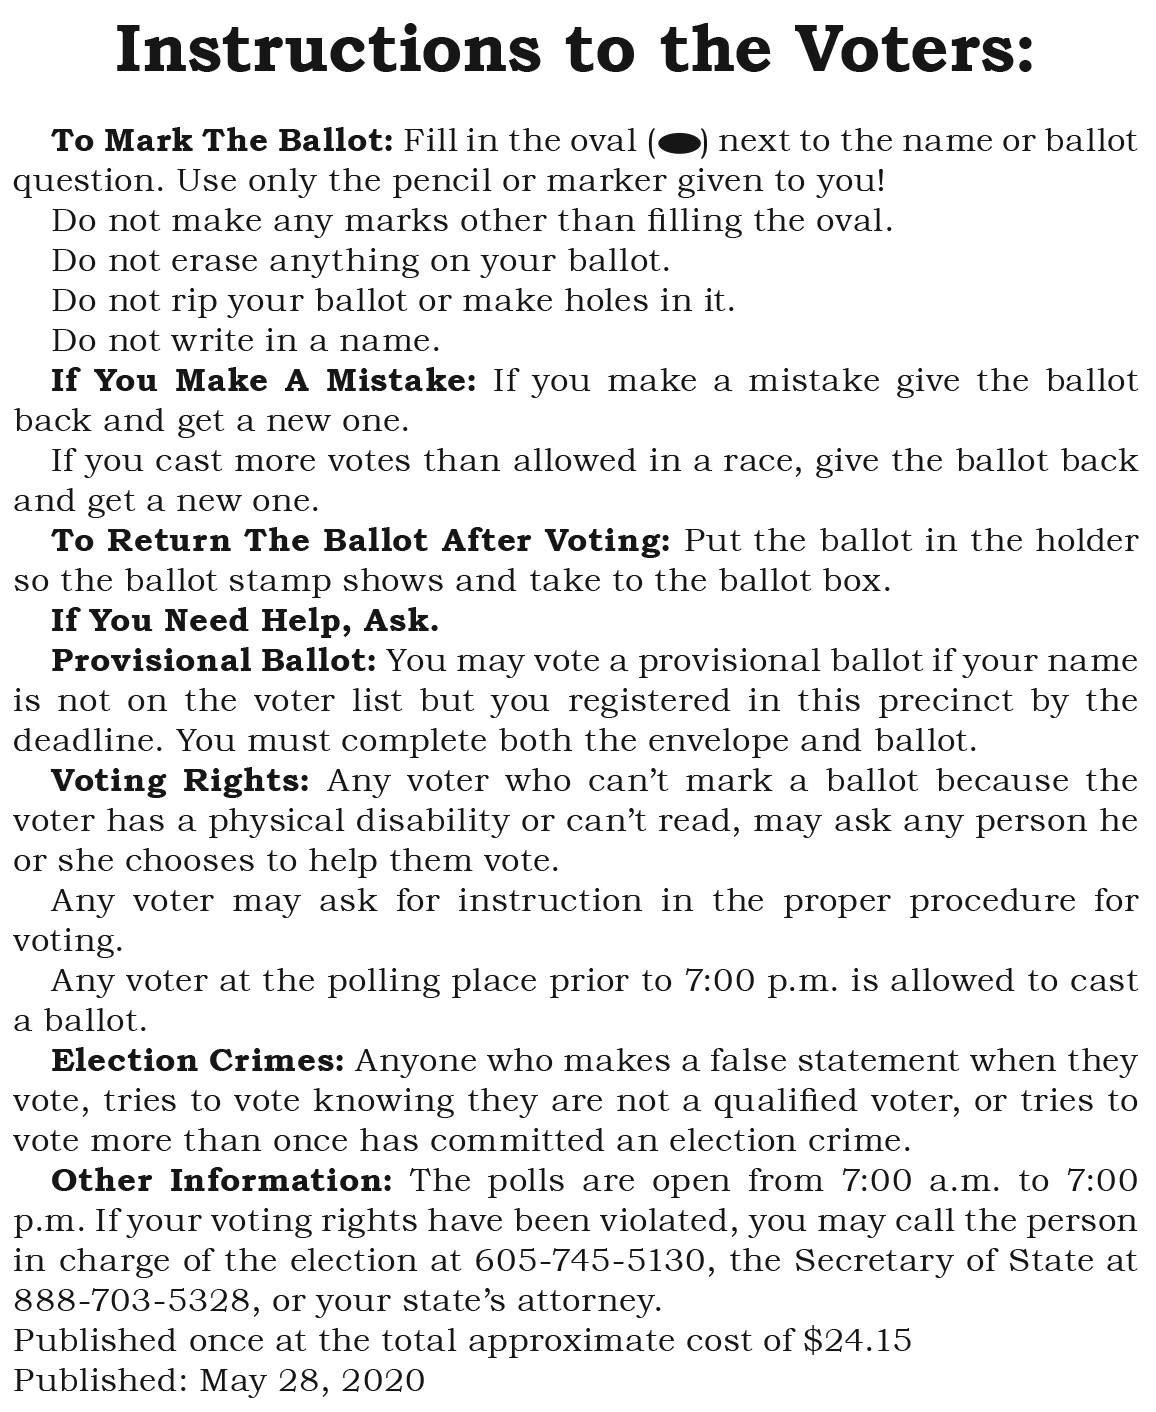 Instructions to Voters Fall River Co